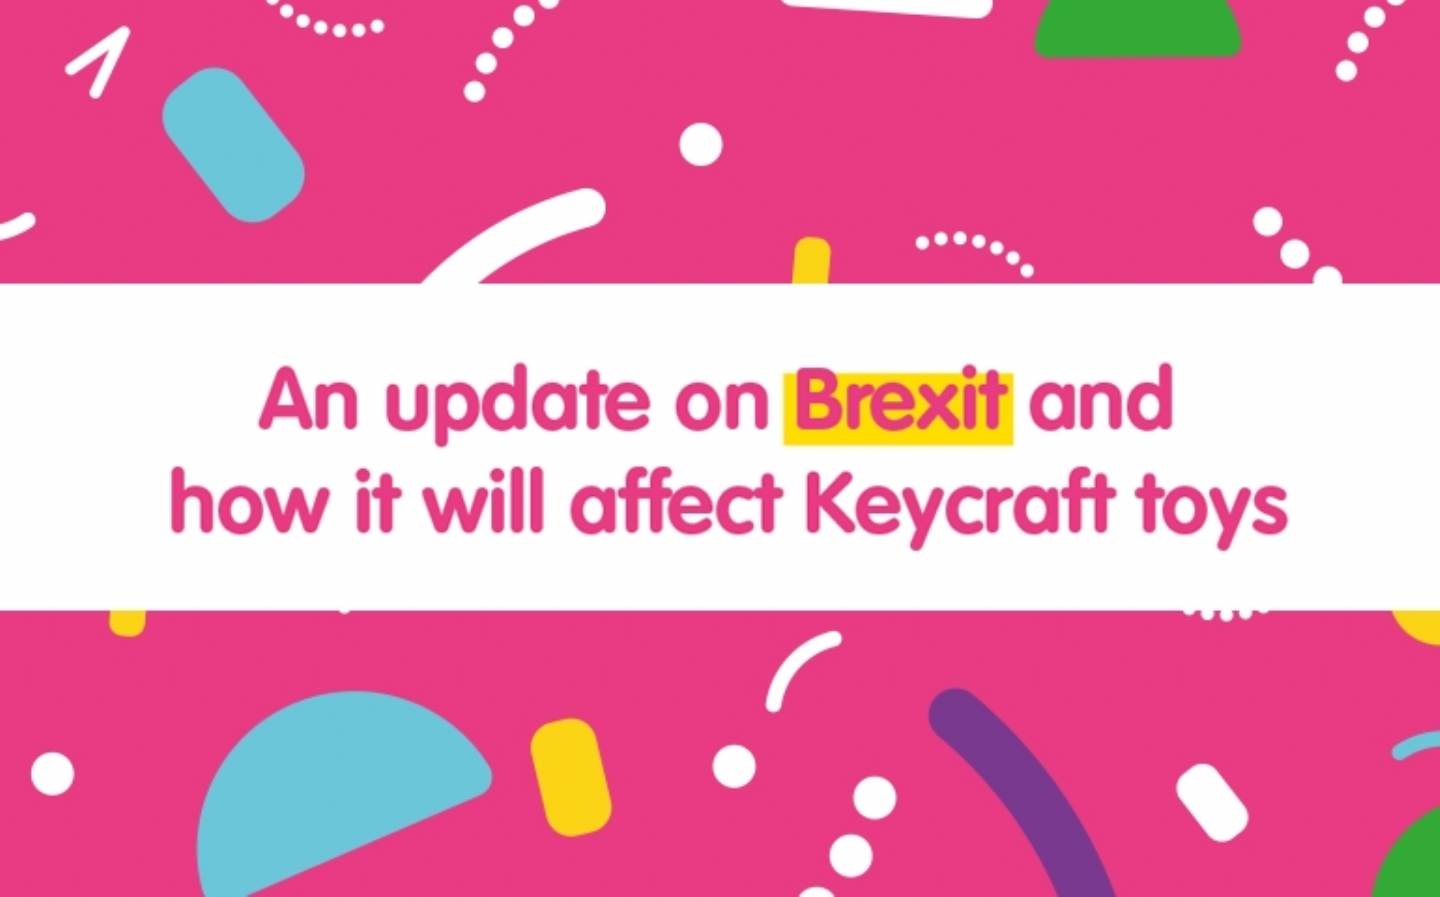 An update on Brexit and how it will affect Keycraft toys